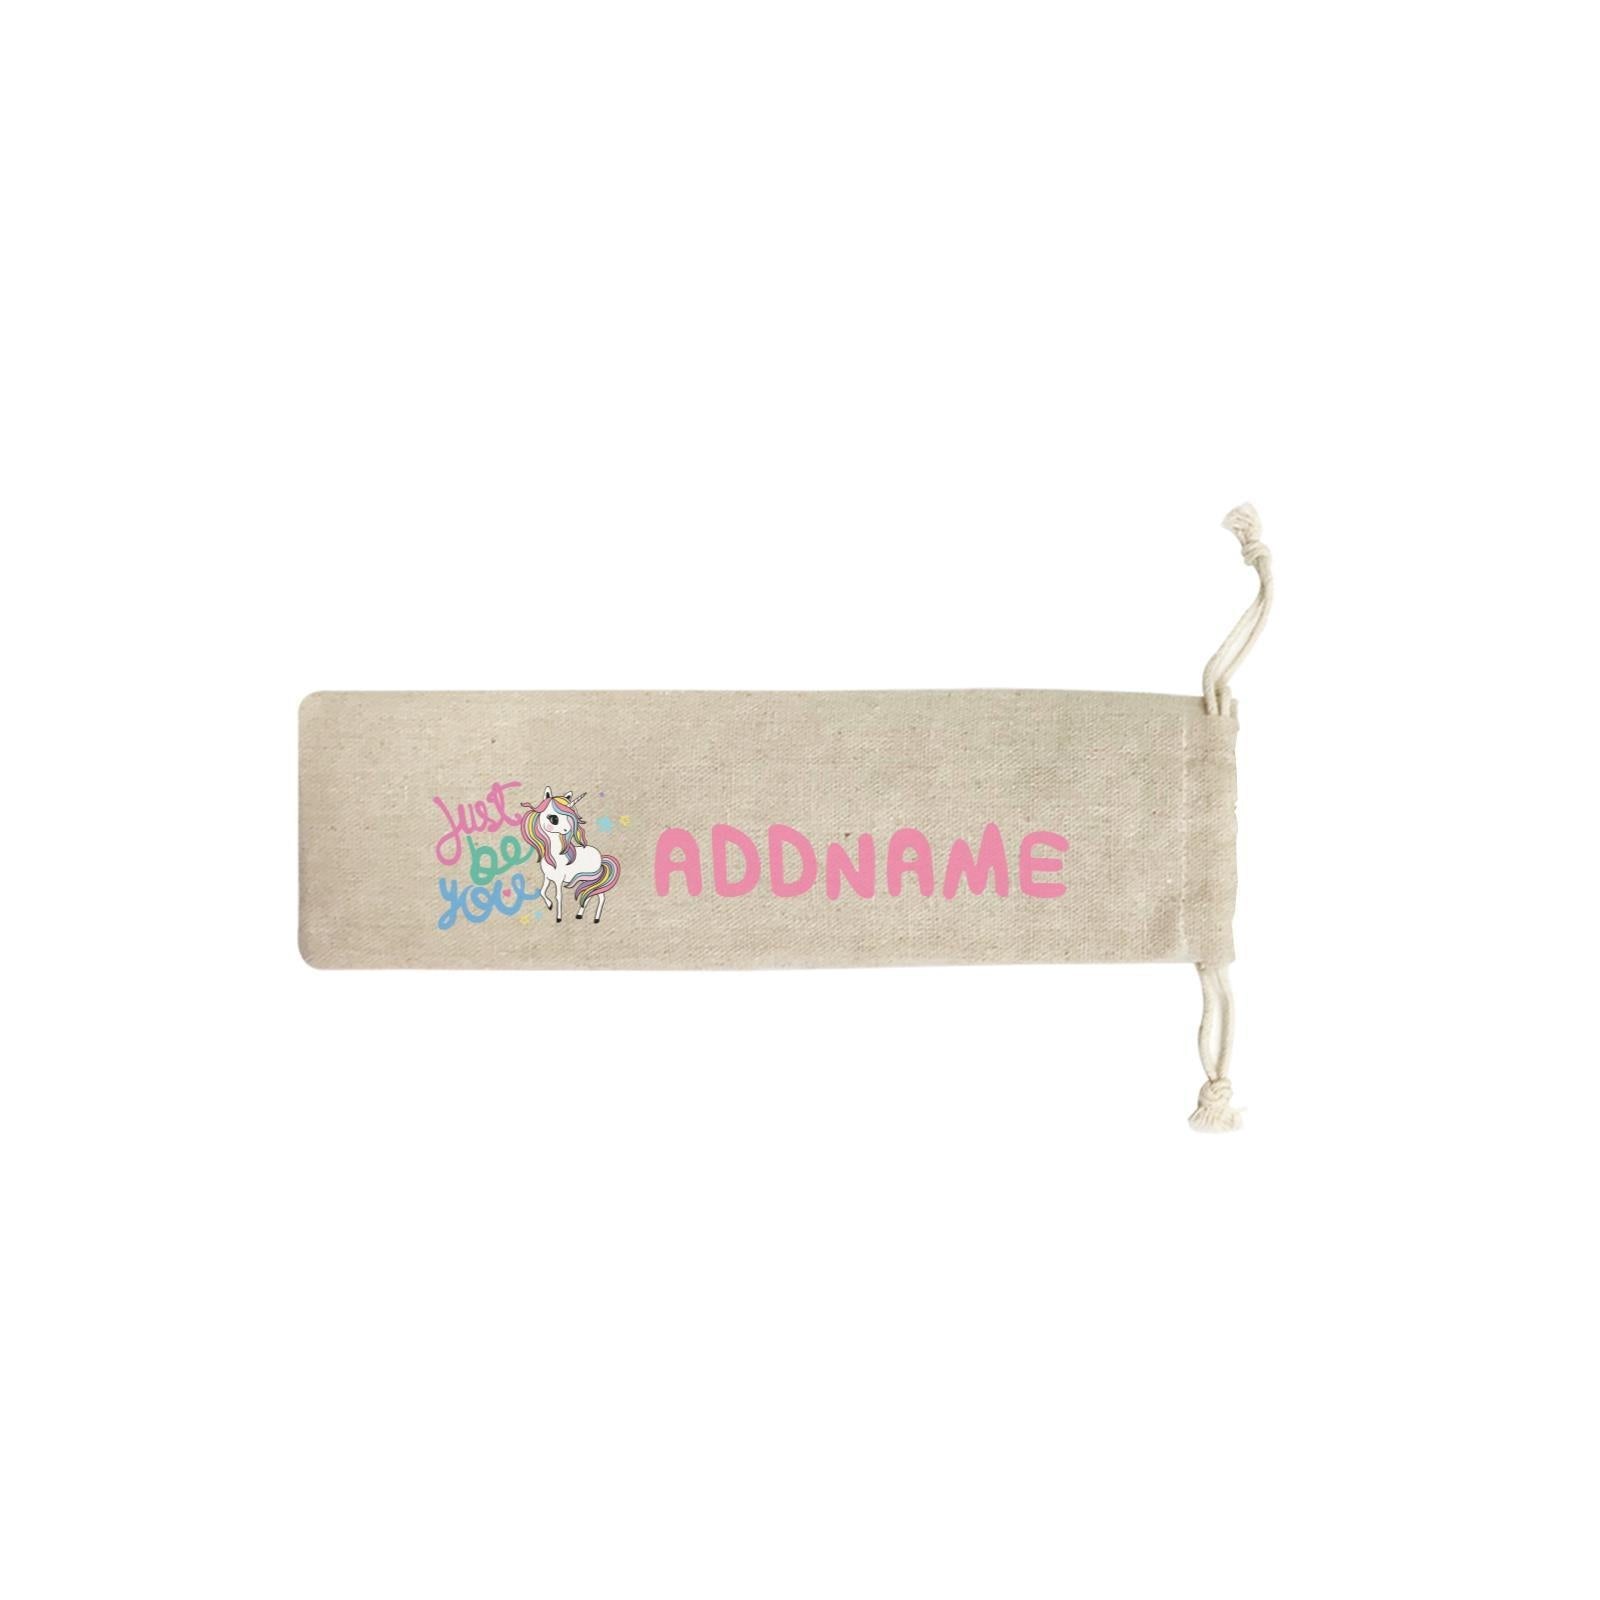 Children's Day Gift Series Just Be You Cute Unicorn Addname SB Straw Pouch (No Straws included)